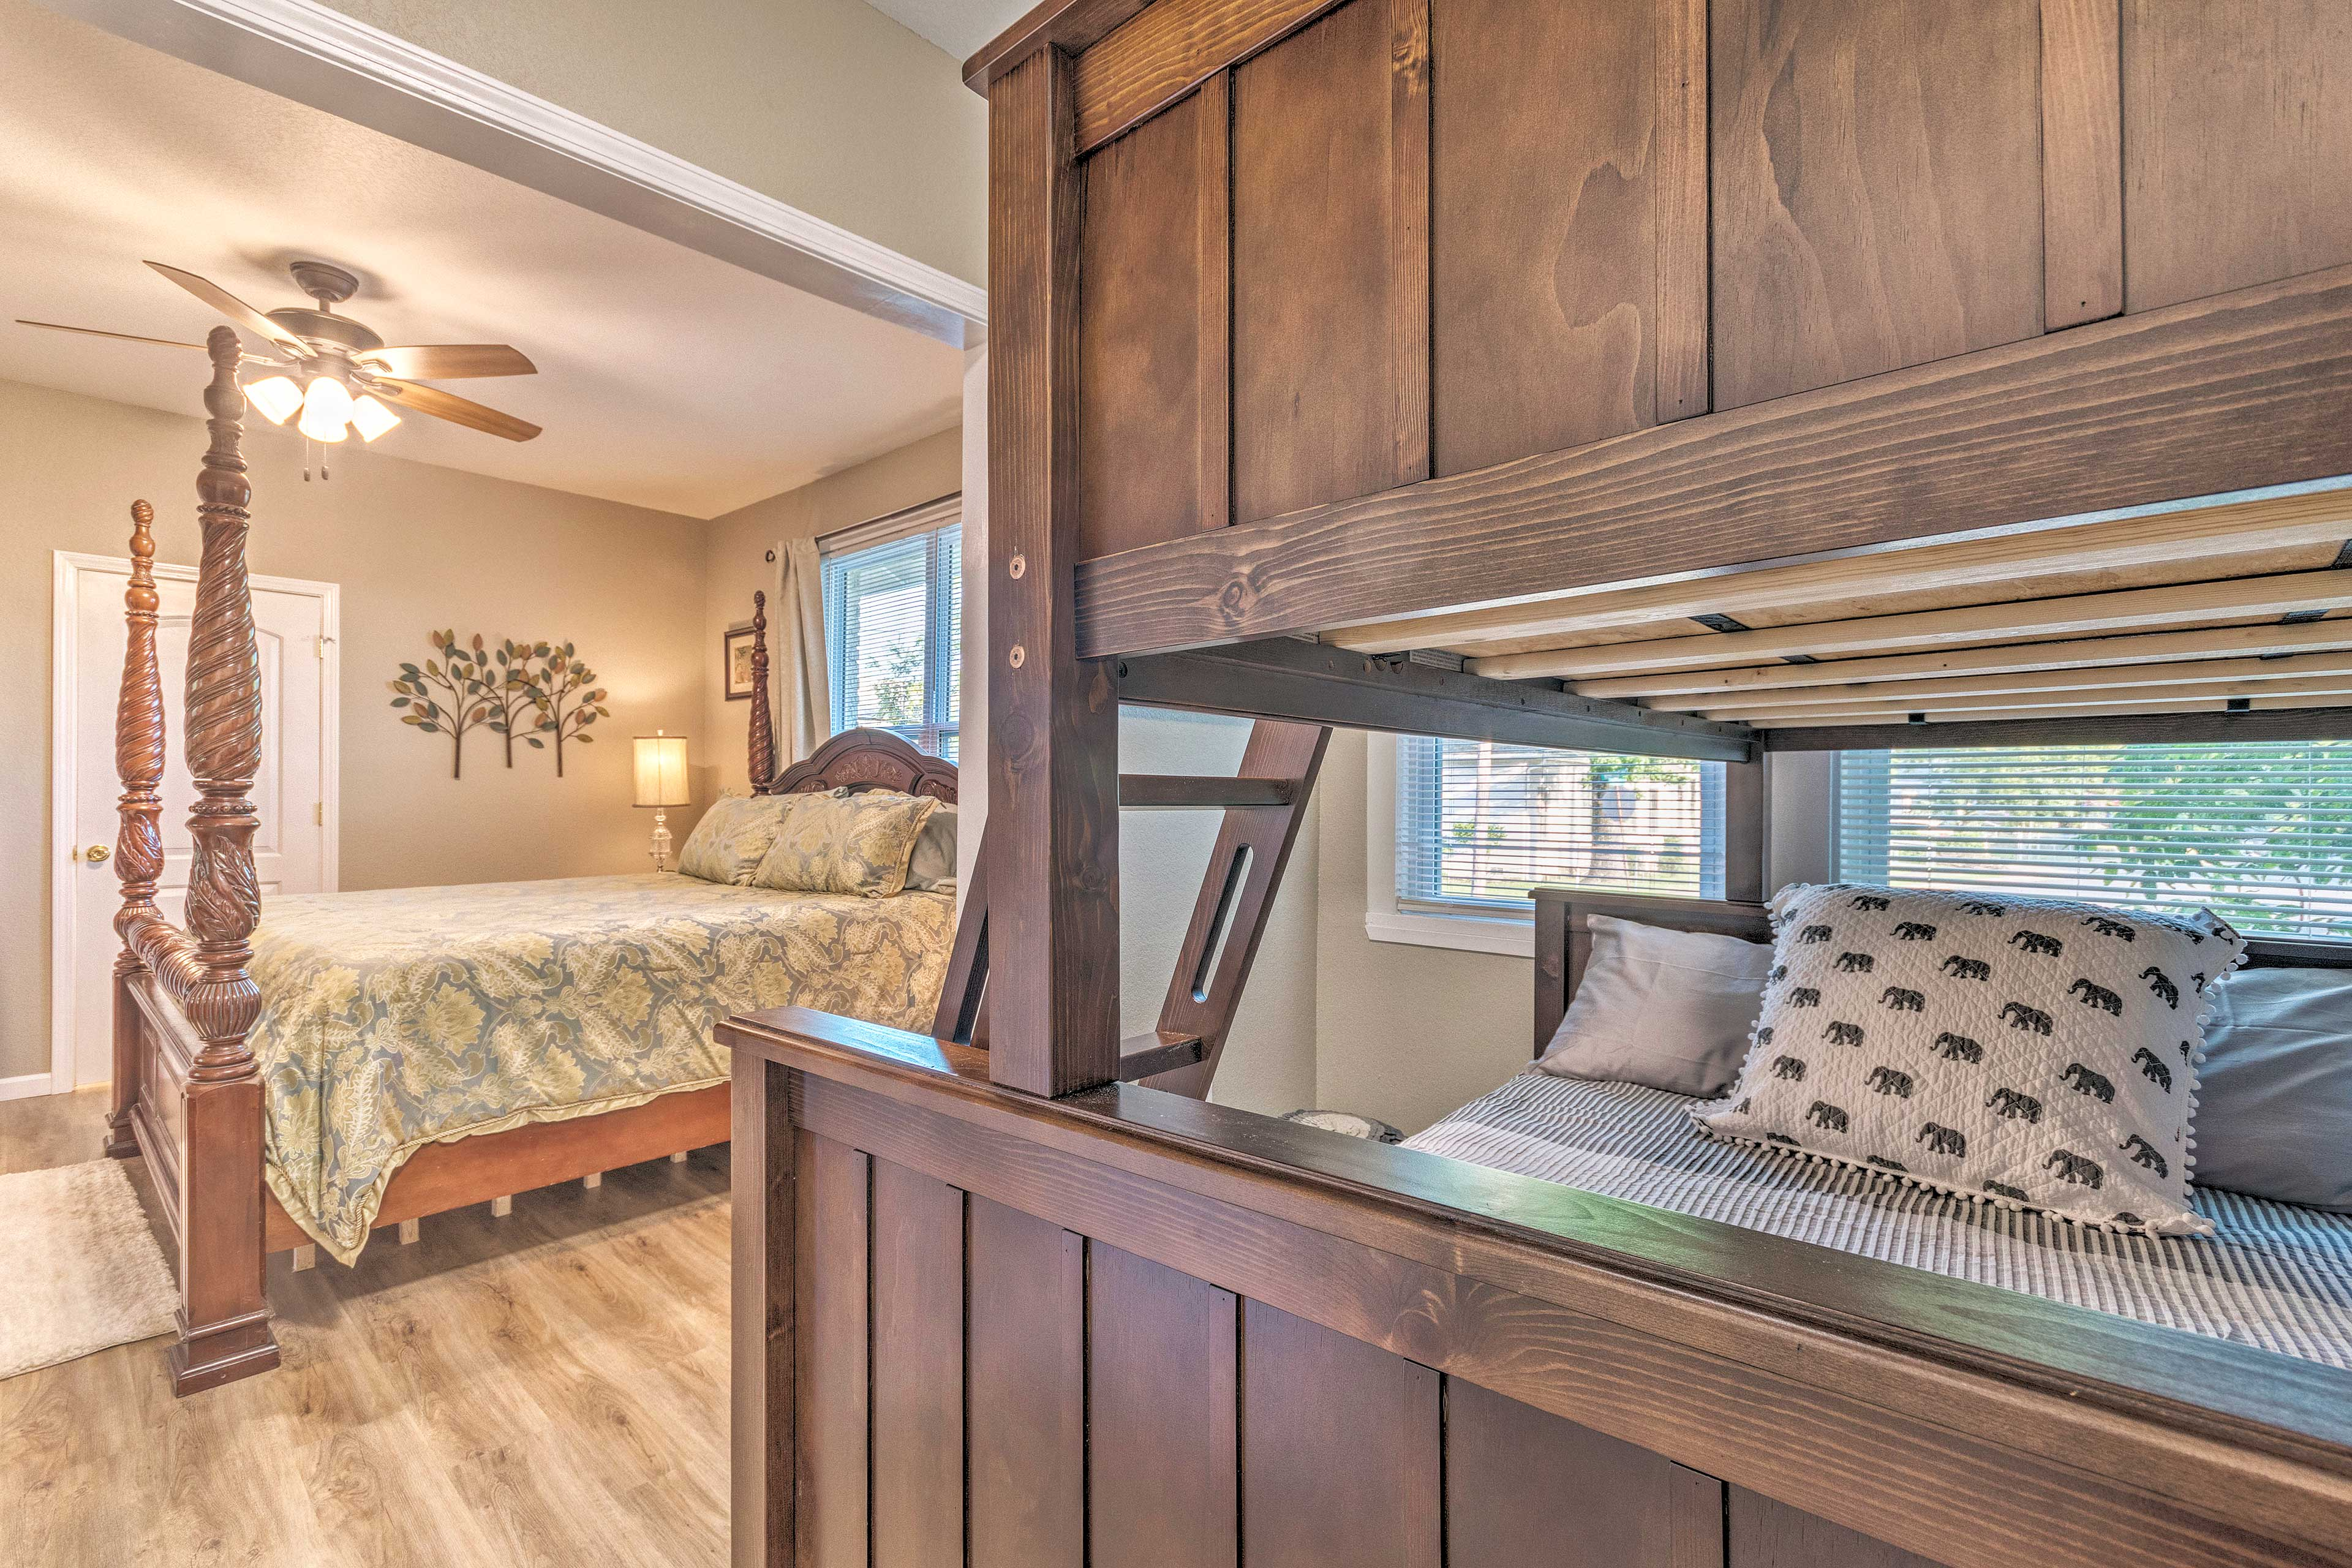 This bunk bed sleeps 3.